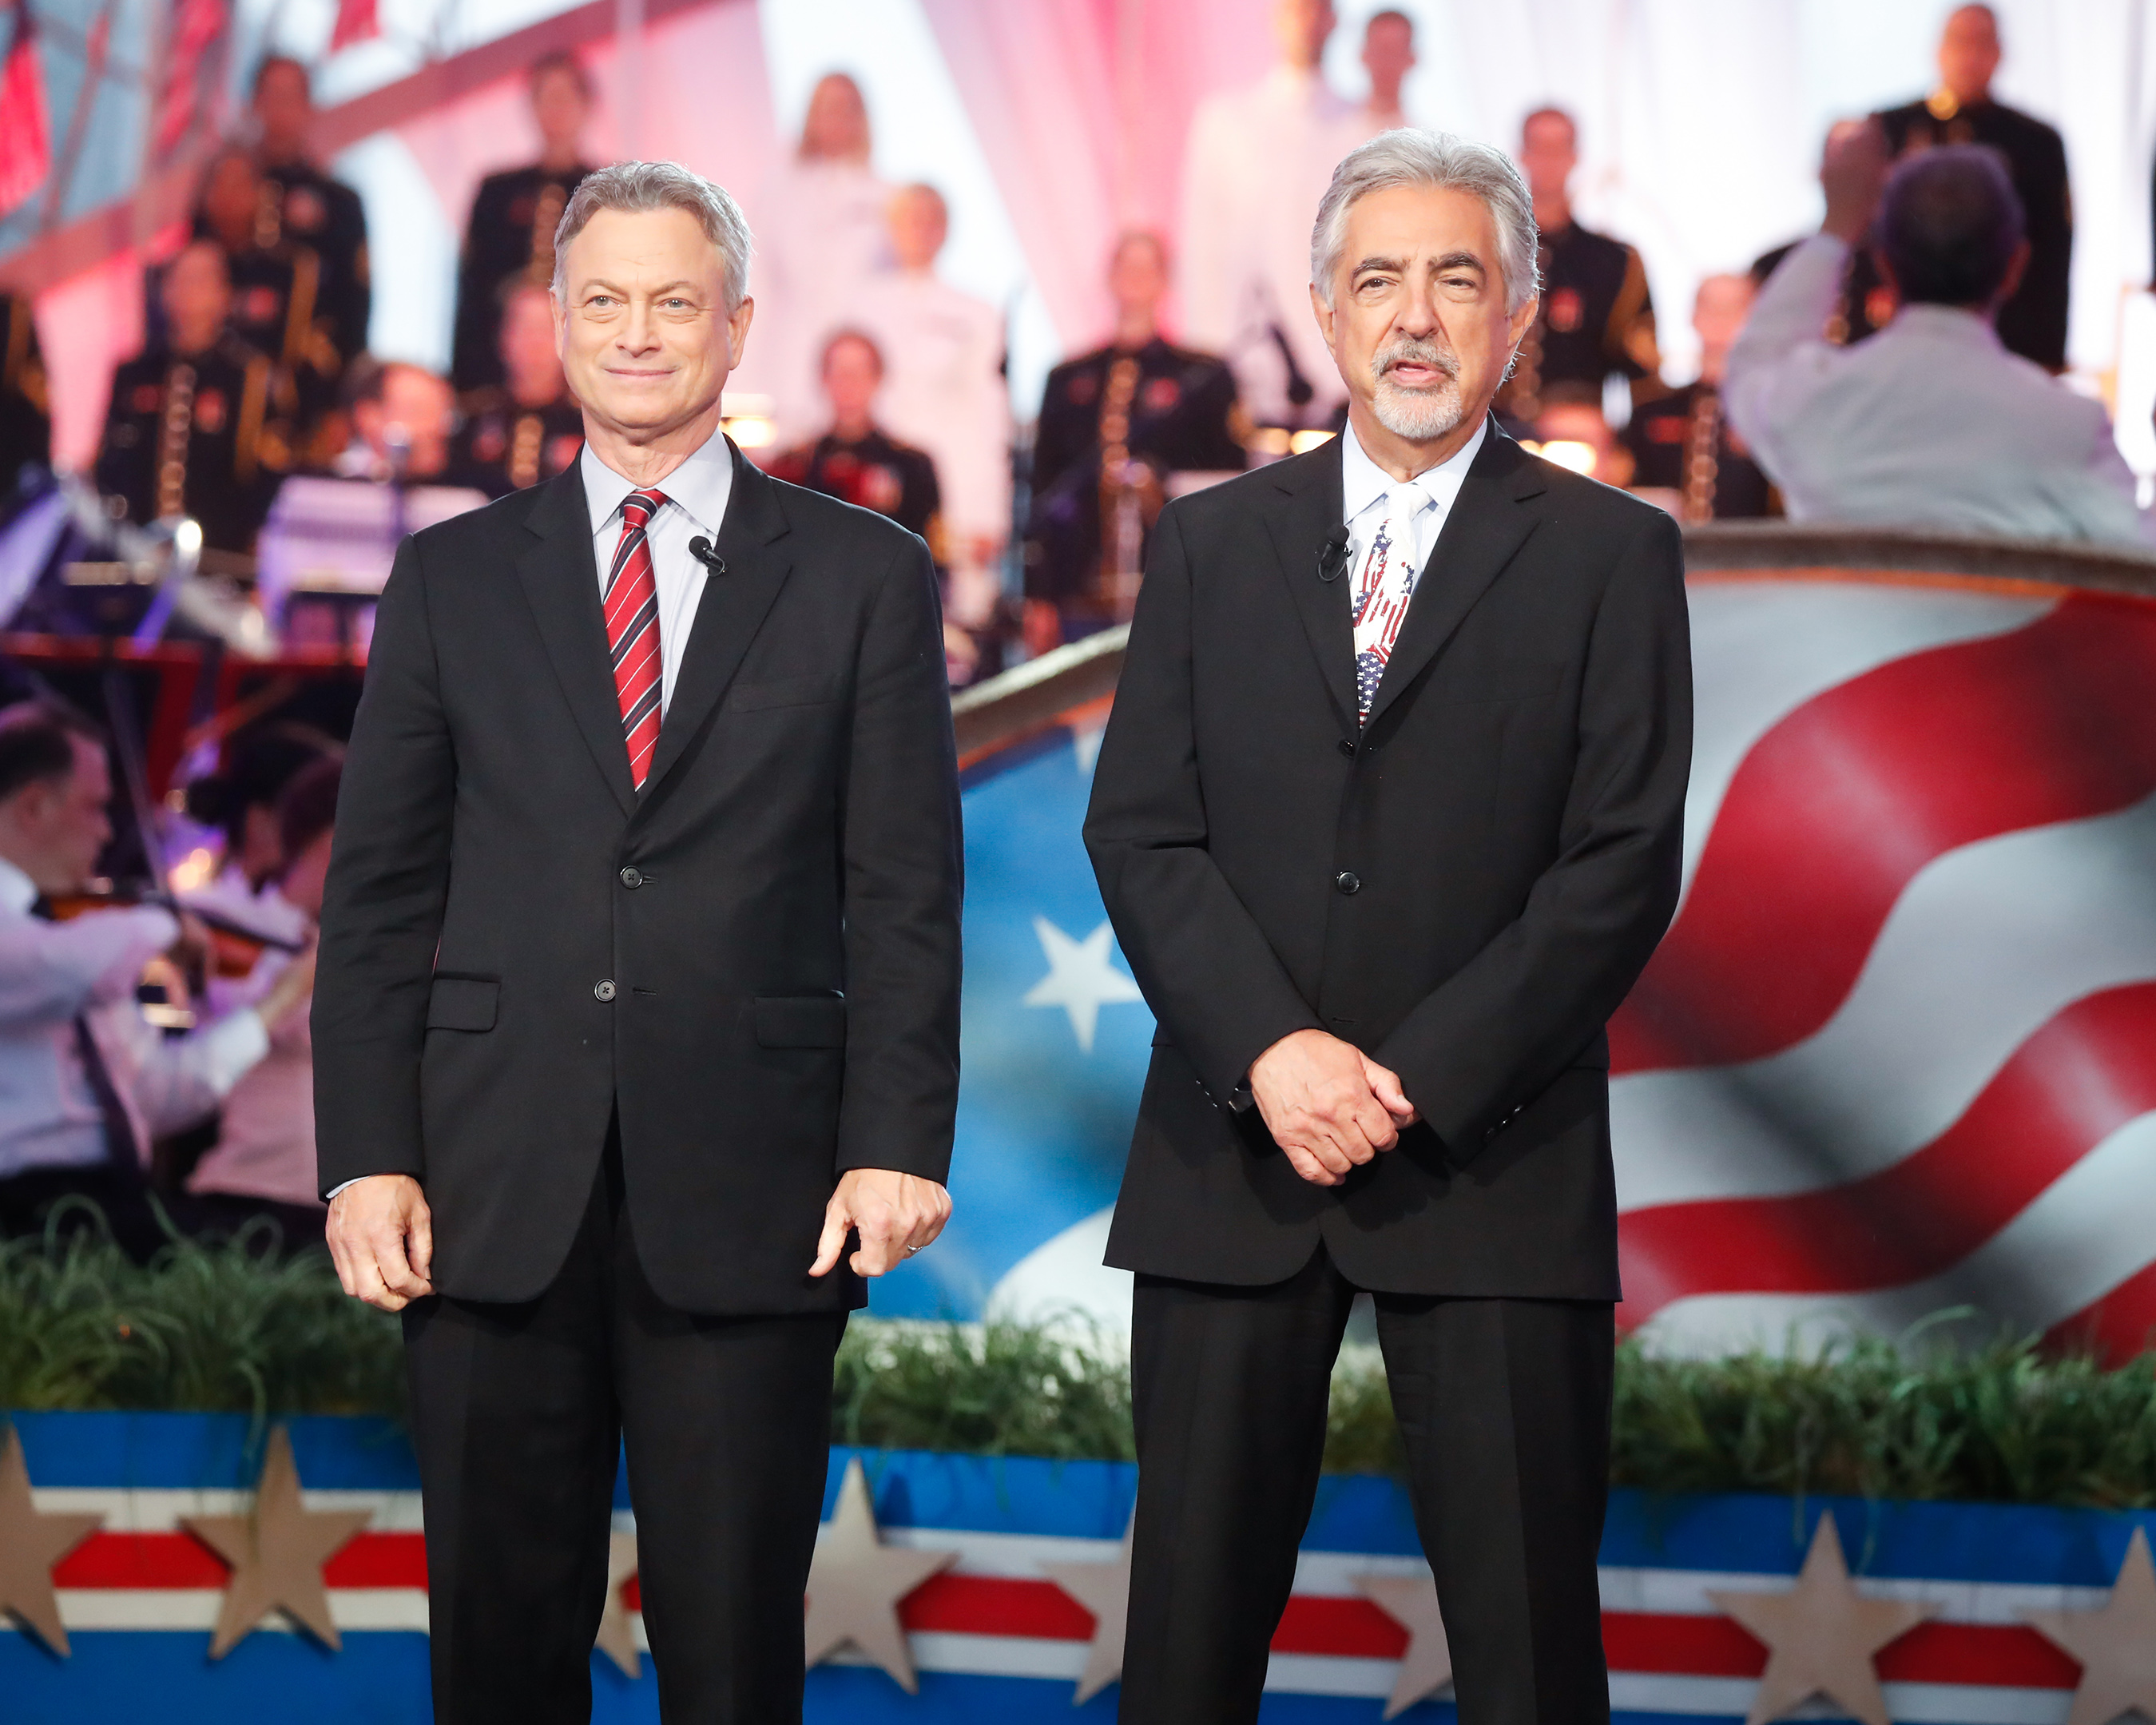 Tony Award-winner Joe Mantegna and Emmy Award-winner Gary Sinise will co-host this year's special 90-minute presentation of the NATIONAL MEMORIAL DAY CONCERT, featuring new and relevant content for these times and iconic show segments, to celebrate all of our American heroes.